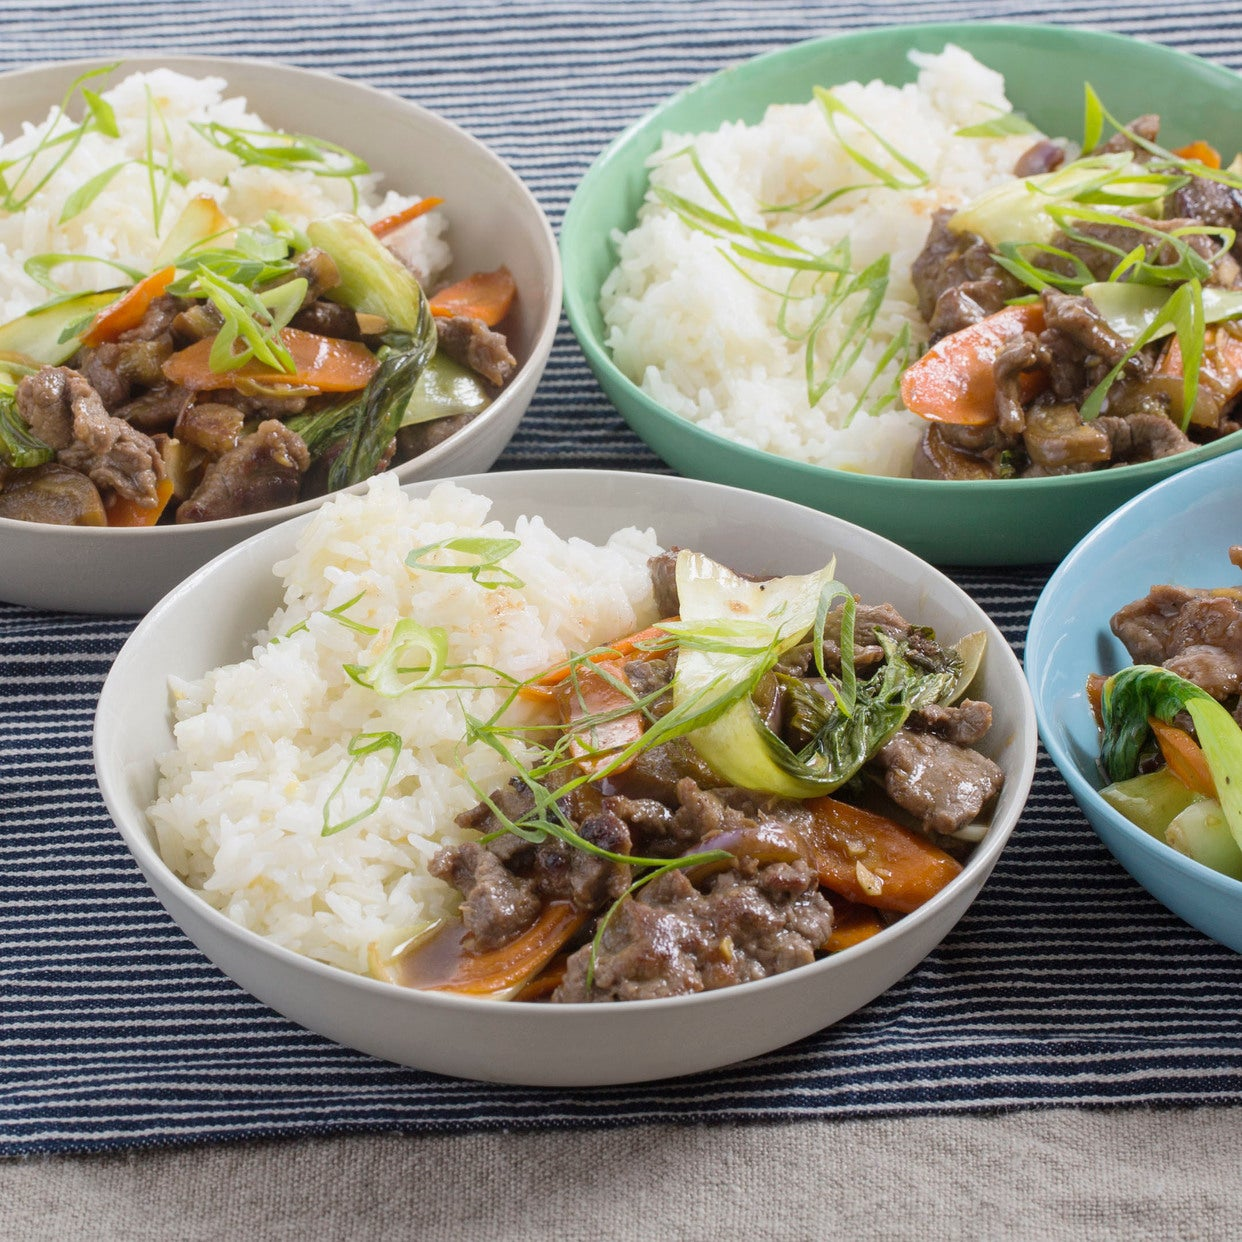 Hoisin Beef & Vegetable Stir-Fry with Fairy Tale Eggplants & Garlic Rice